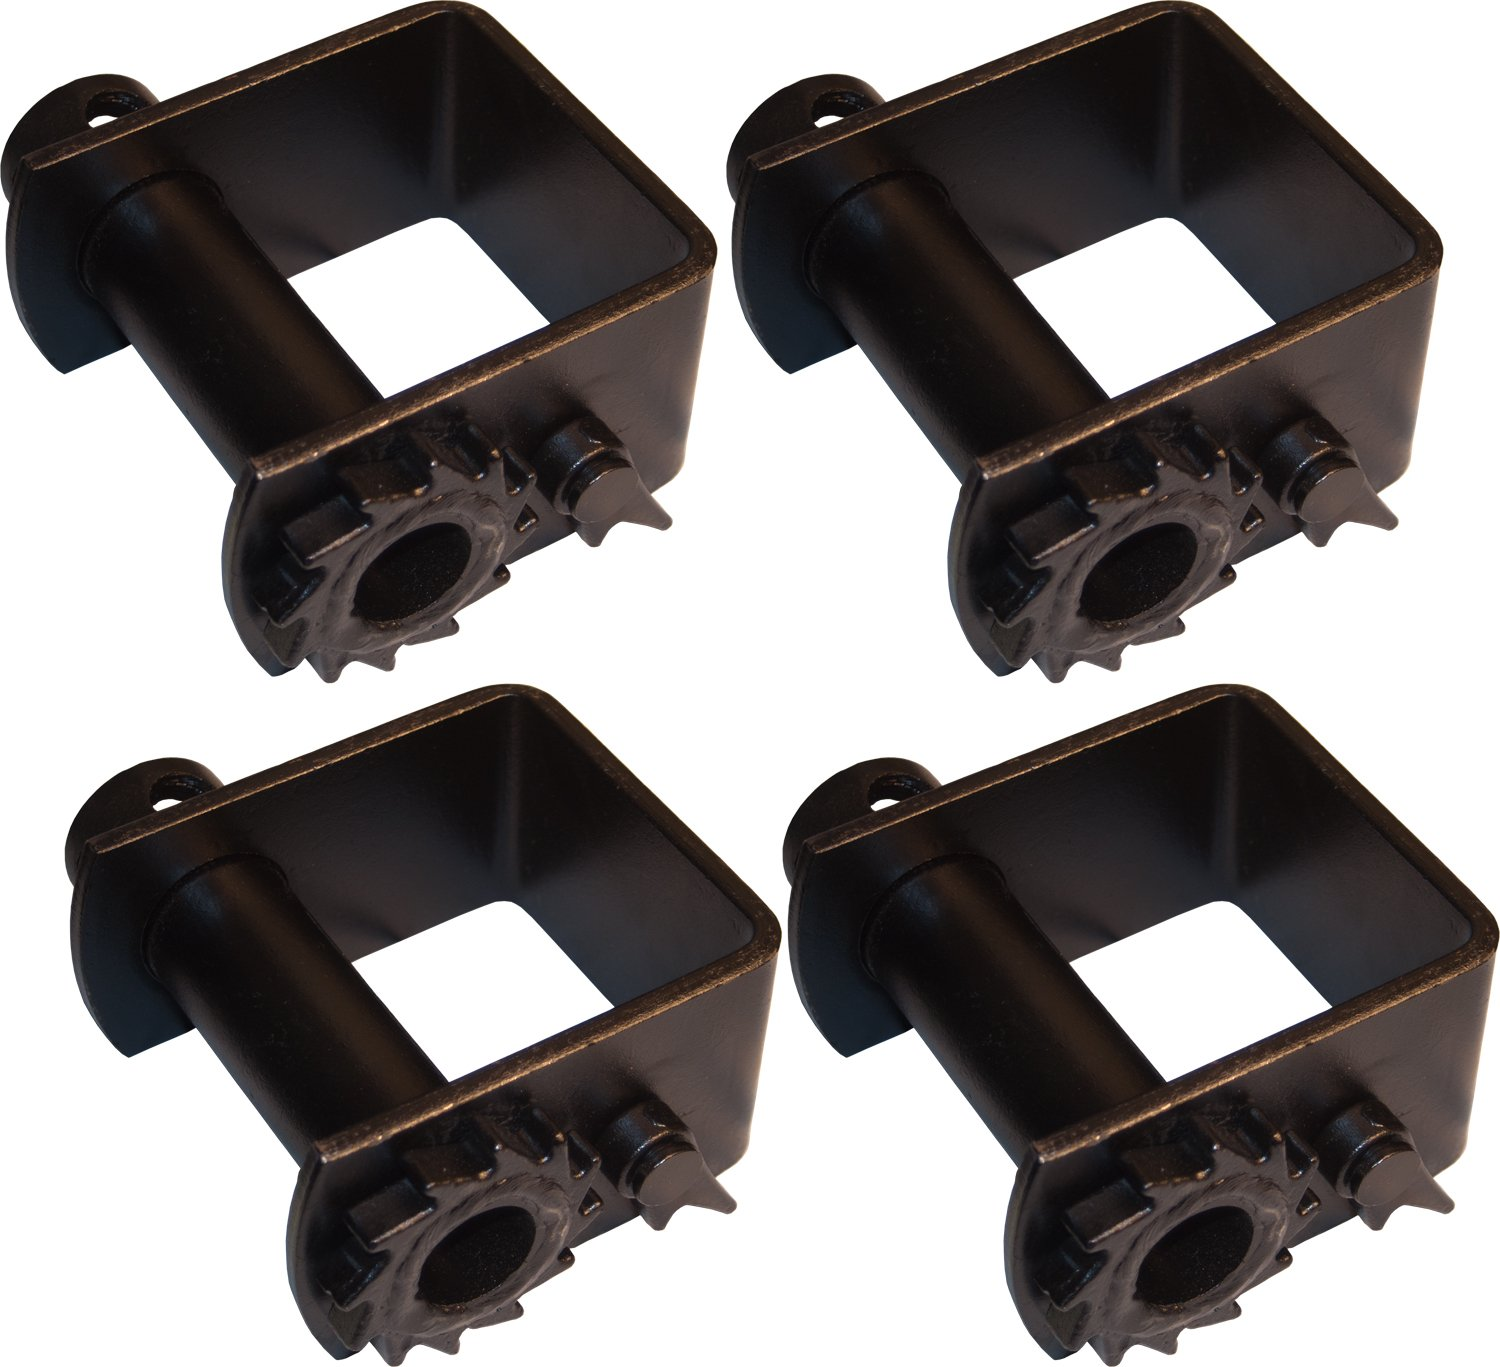 4 Heavy Duty Weld On Winches for Flatbed Trailers, Car Haulers GPD